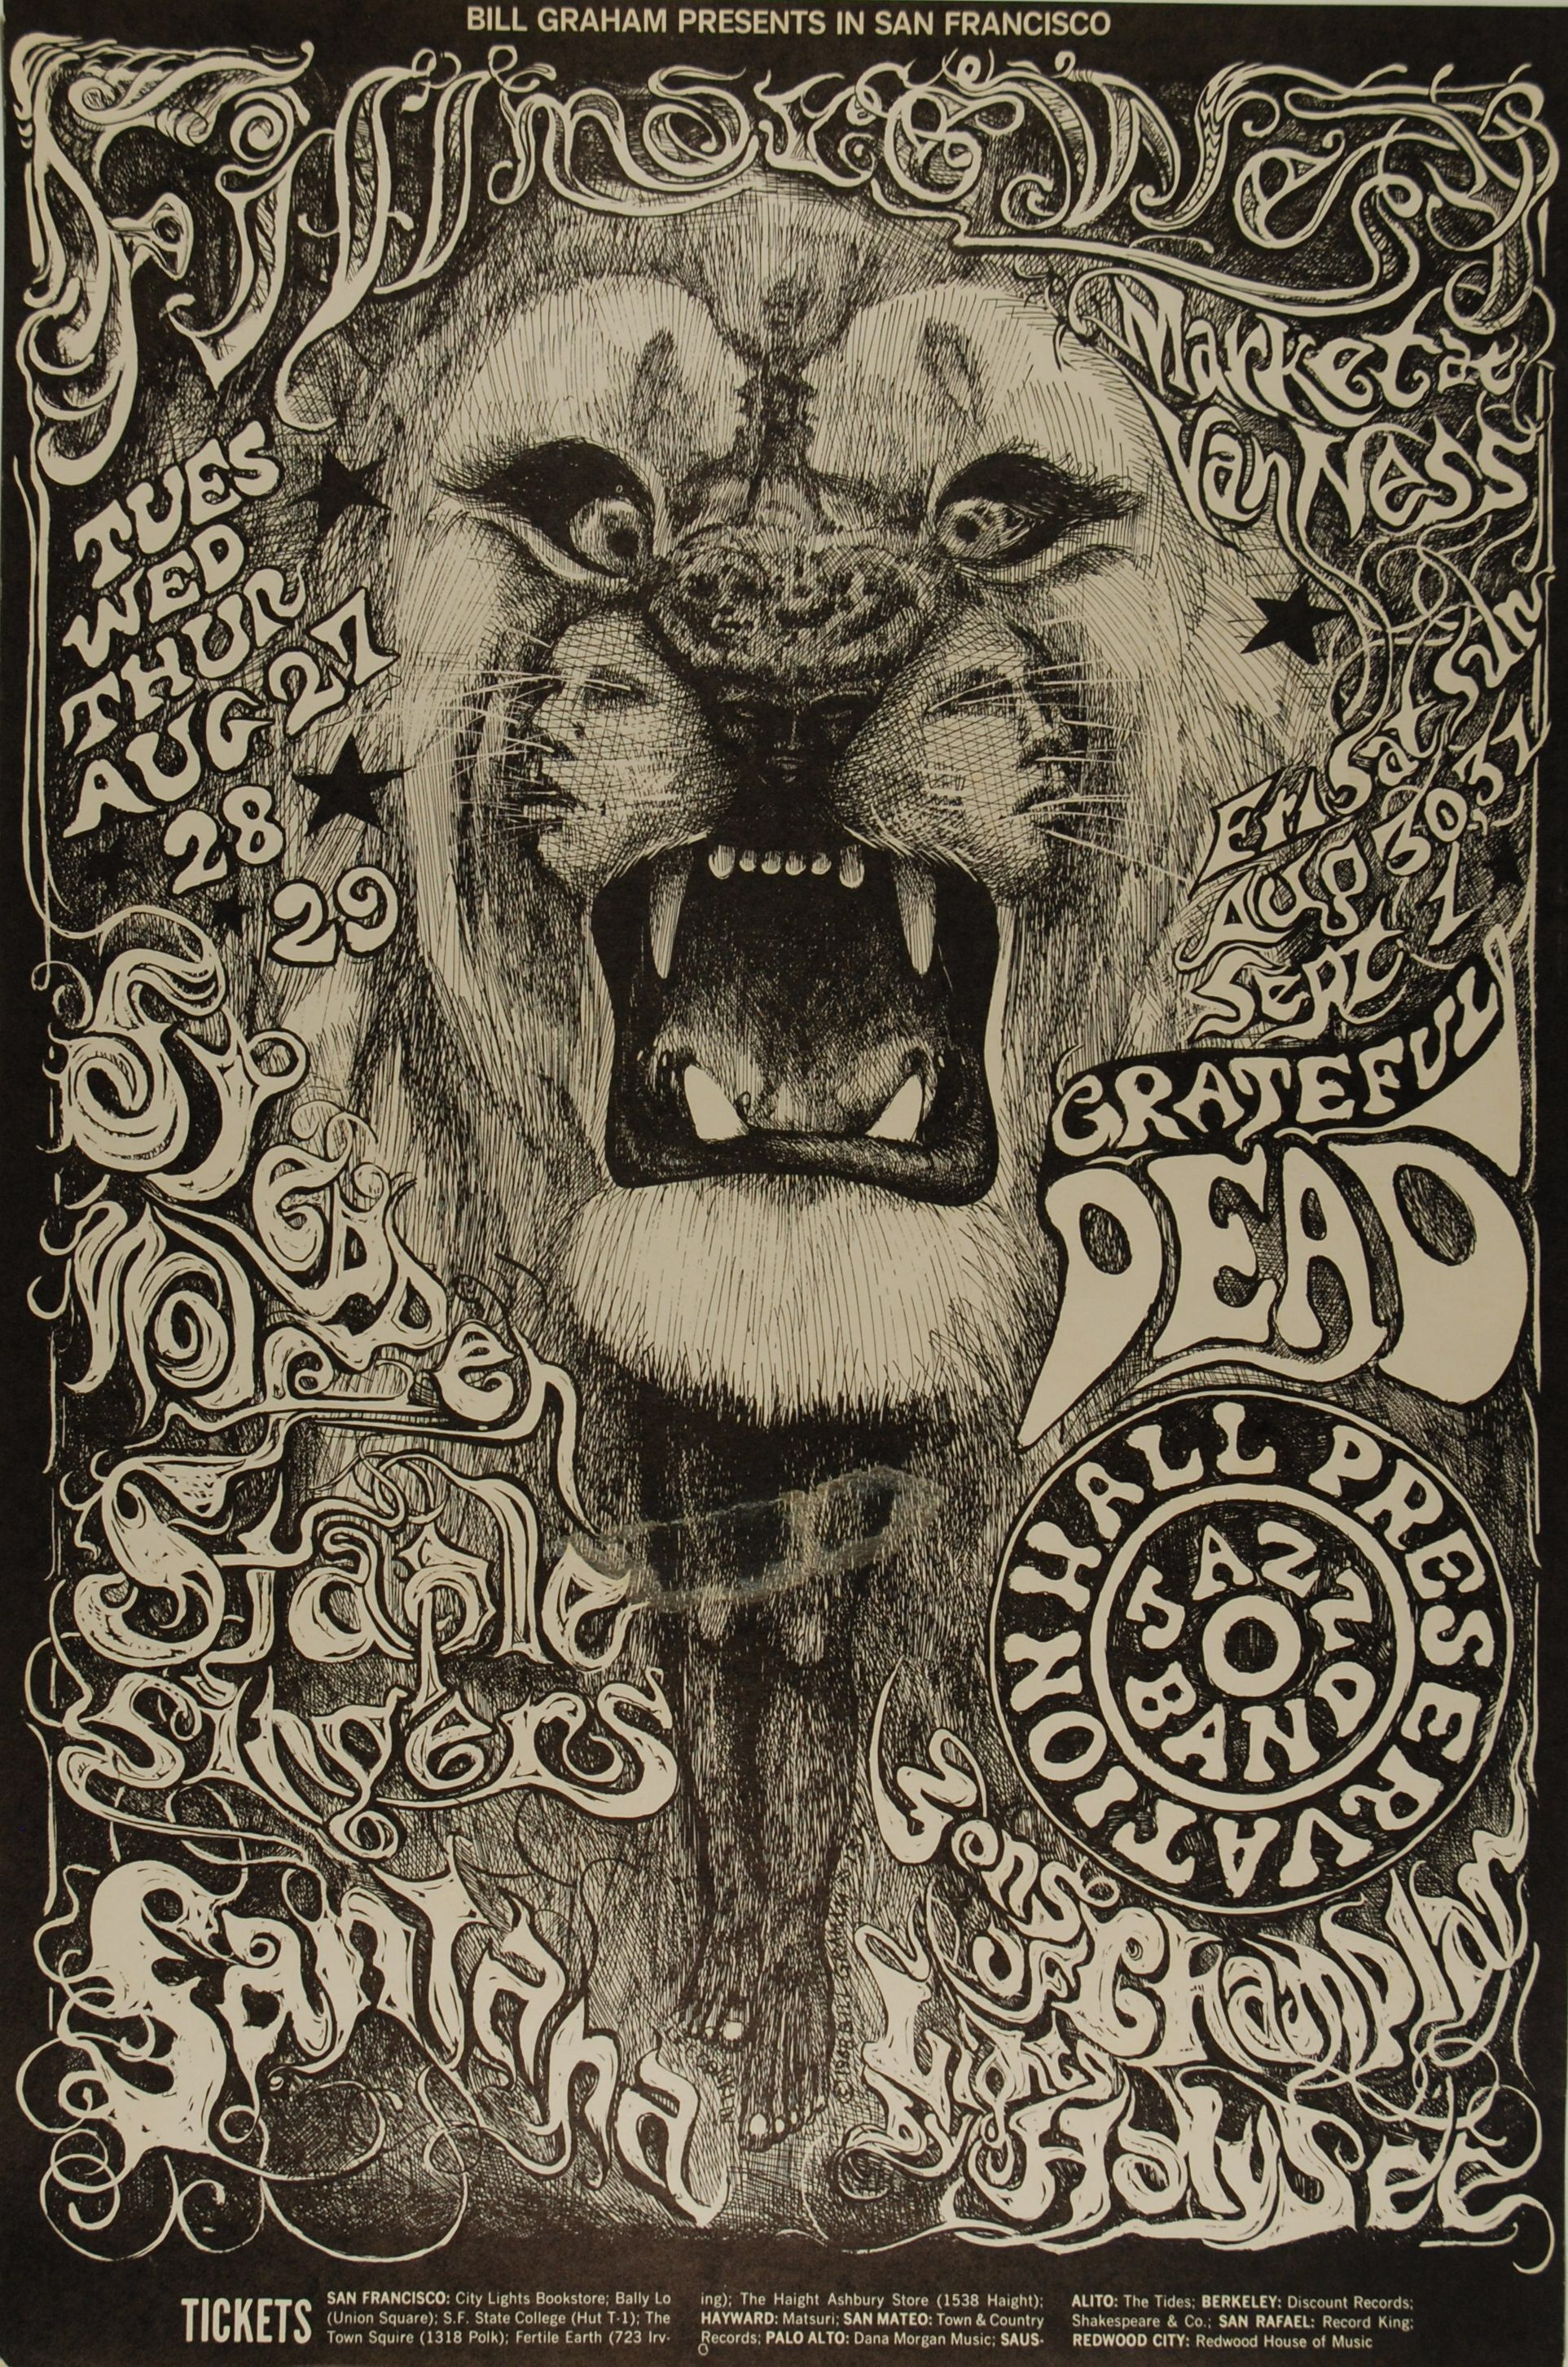 BG 134) 1968 Steppenwolf / Grateful Dead at the Fillmore. Art by Lee ...